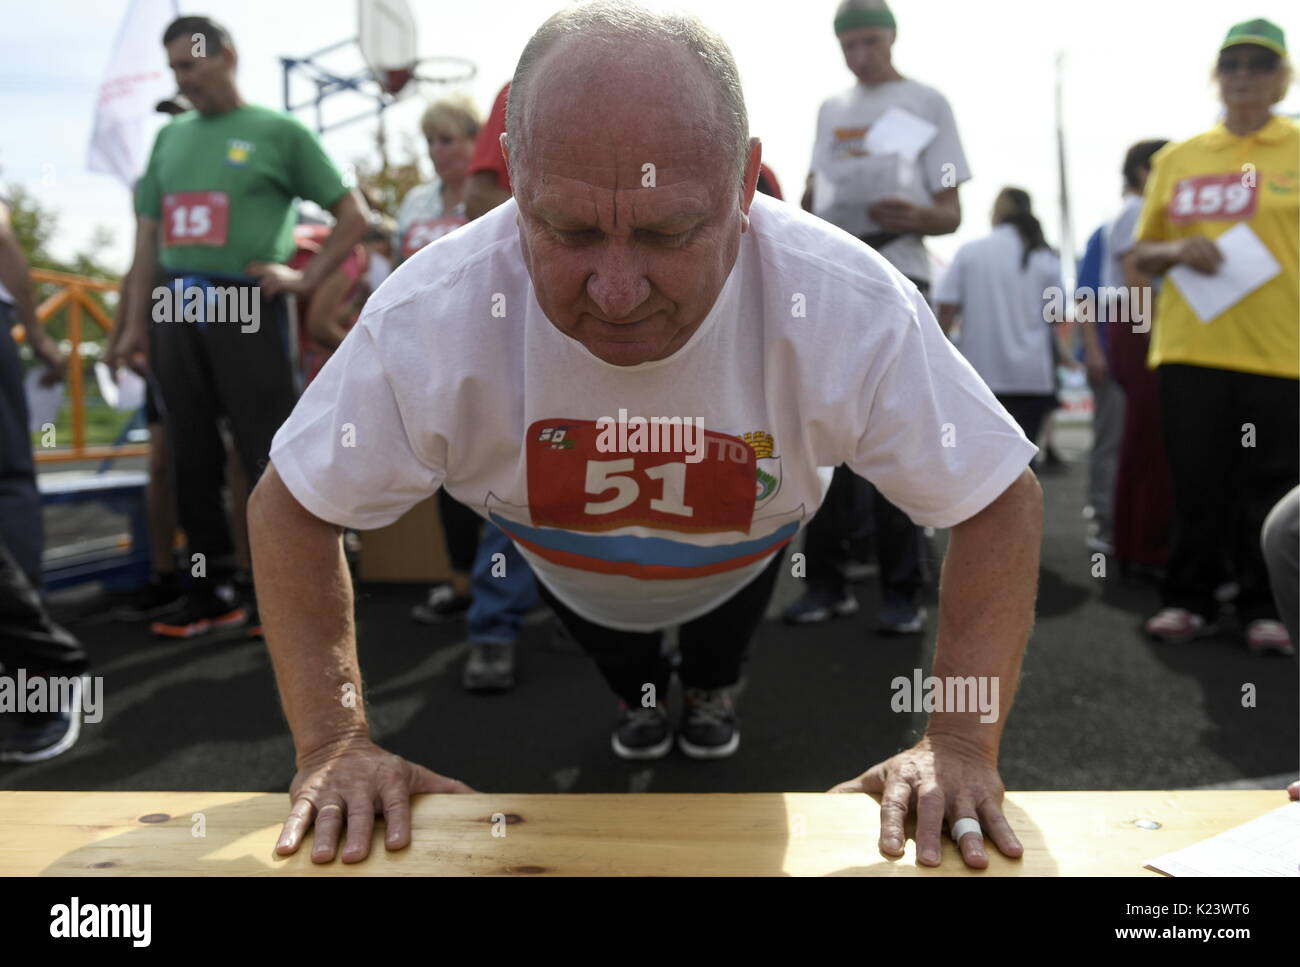 Novosibirsk Region, Russia. 30th Aug, 2017. An elderly man takes Soviet-era physical fitness tests in the village of Kochenevo. A fitness programme 'Ready for Labour and Defence' [known by Russian acronym GTO] introduced by Joseph Stalin in the 1930s to get the nation into shape has been recently revived in Russia. Credit: Kirill Kukhmar/TASS/Alamy Live News - Stock Image